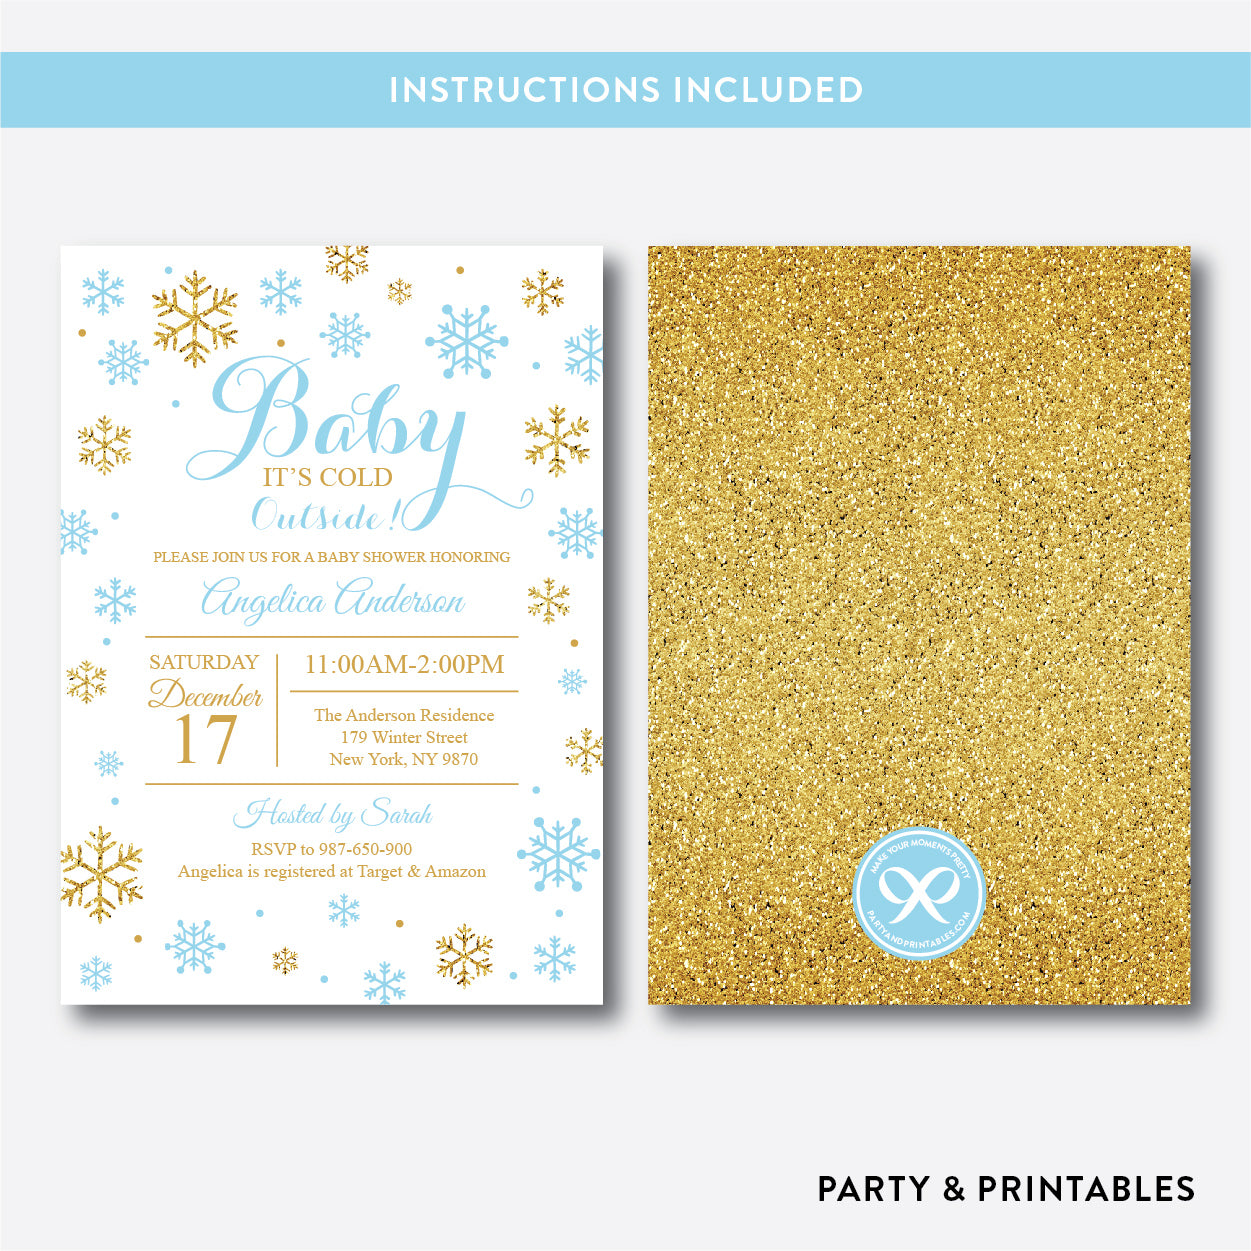 Baby It Cold Outside Baby Shower Invitation / Editable / Instant Download (GBS.11), invitation - Party and Printables